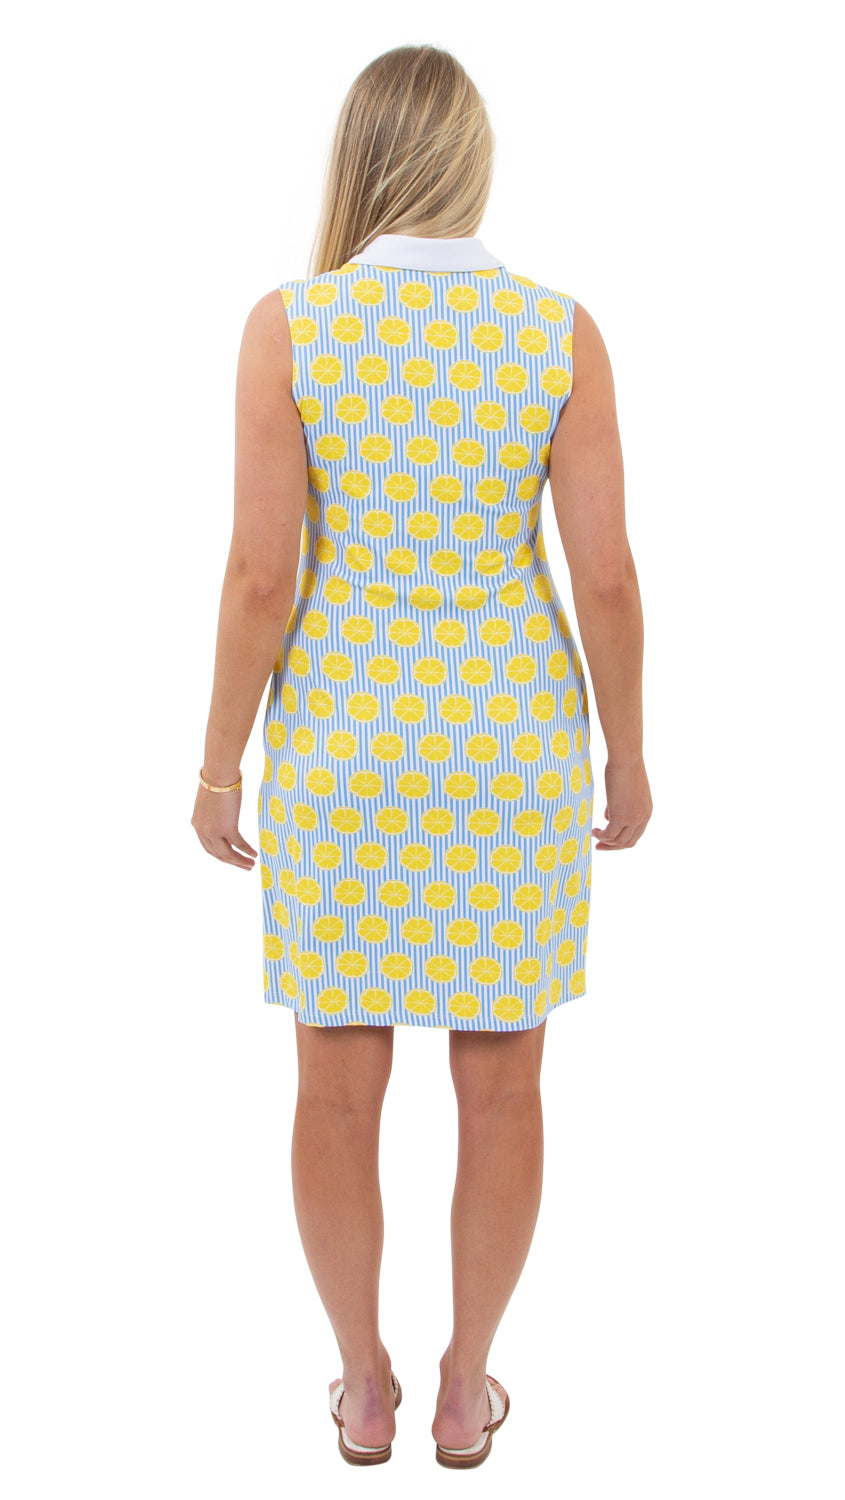 Port Sleeveless Dress - Summer Citrus-SAMPLE FINAL SALE